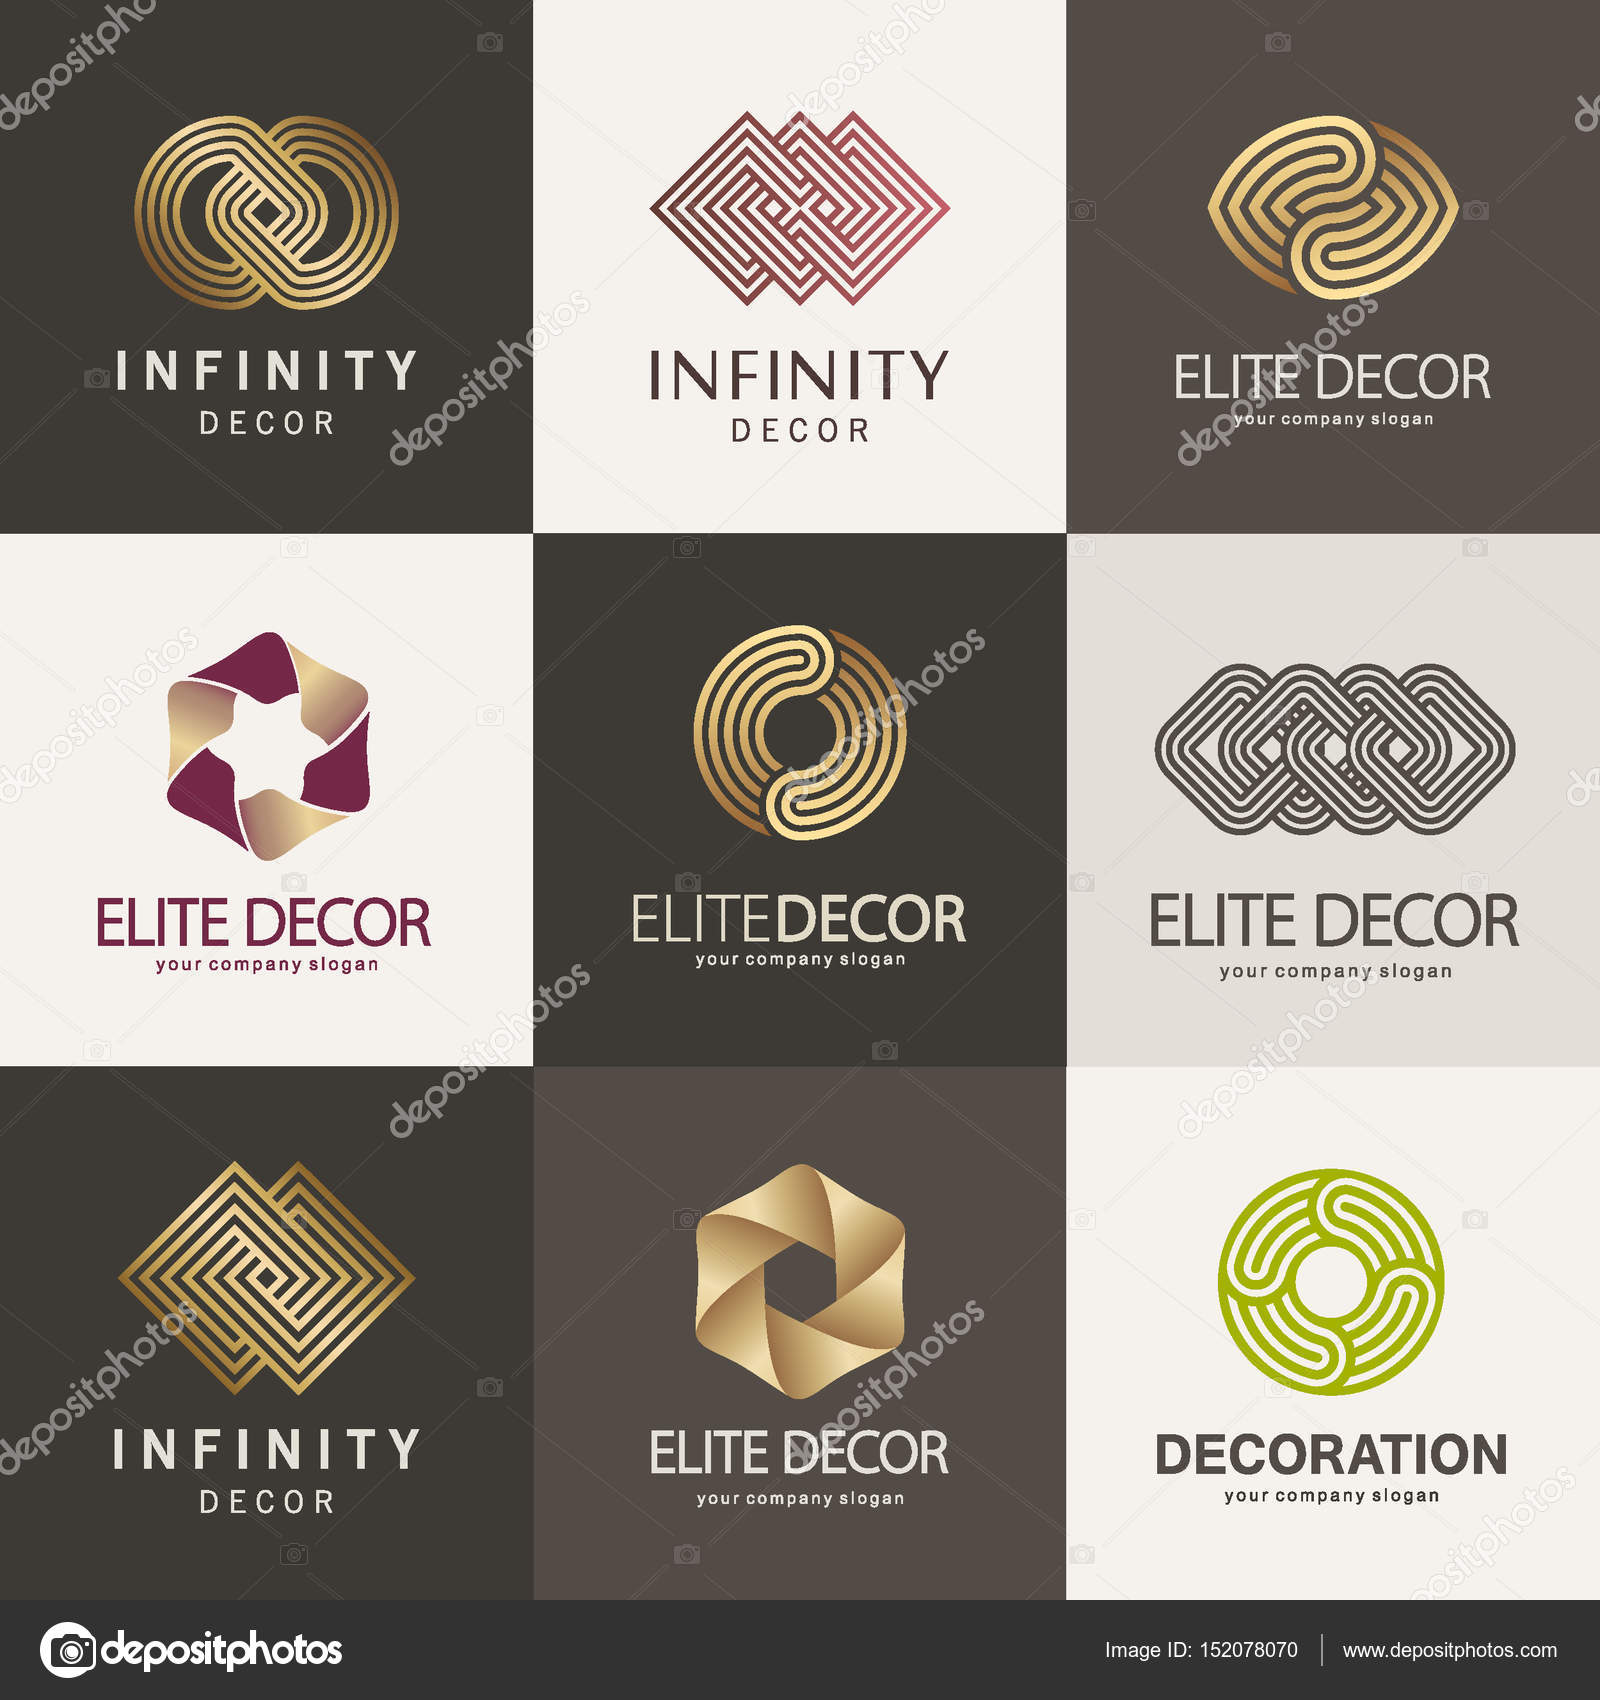 A Collection Of Logos For Interior Furniture Shops Decor Items And Home Decoration Stock Illustration